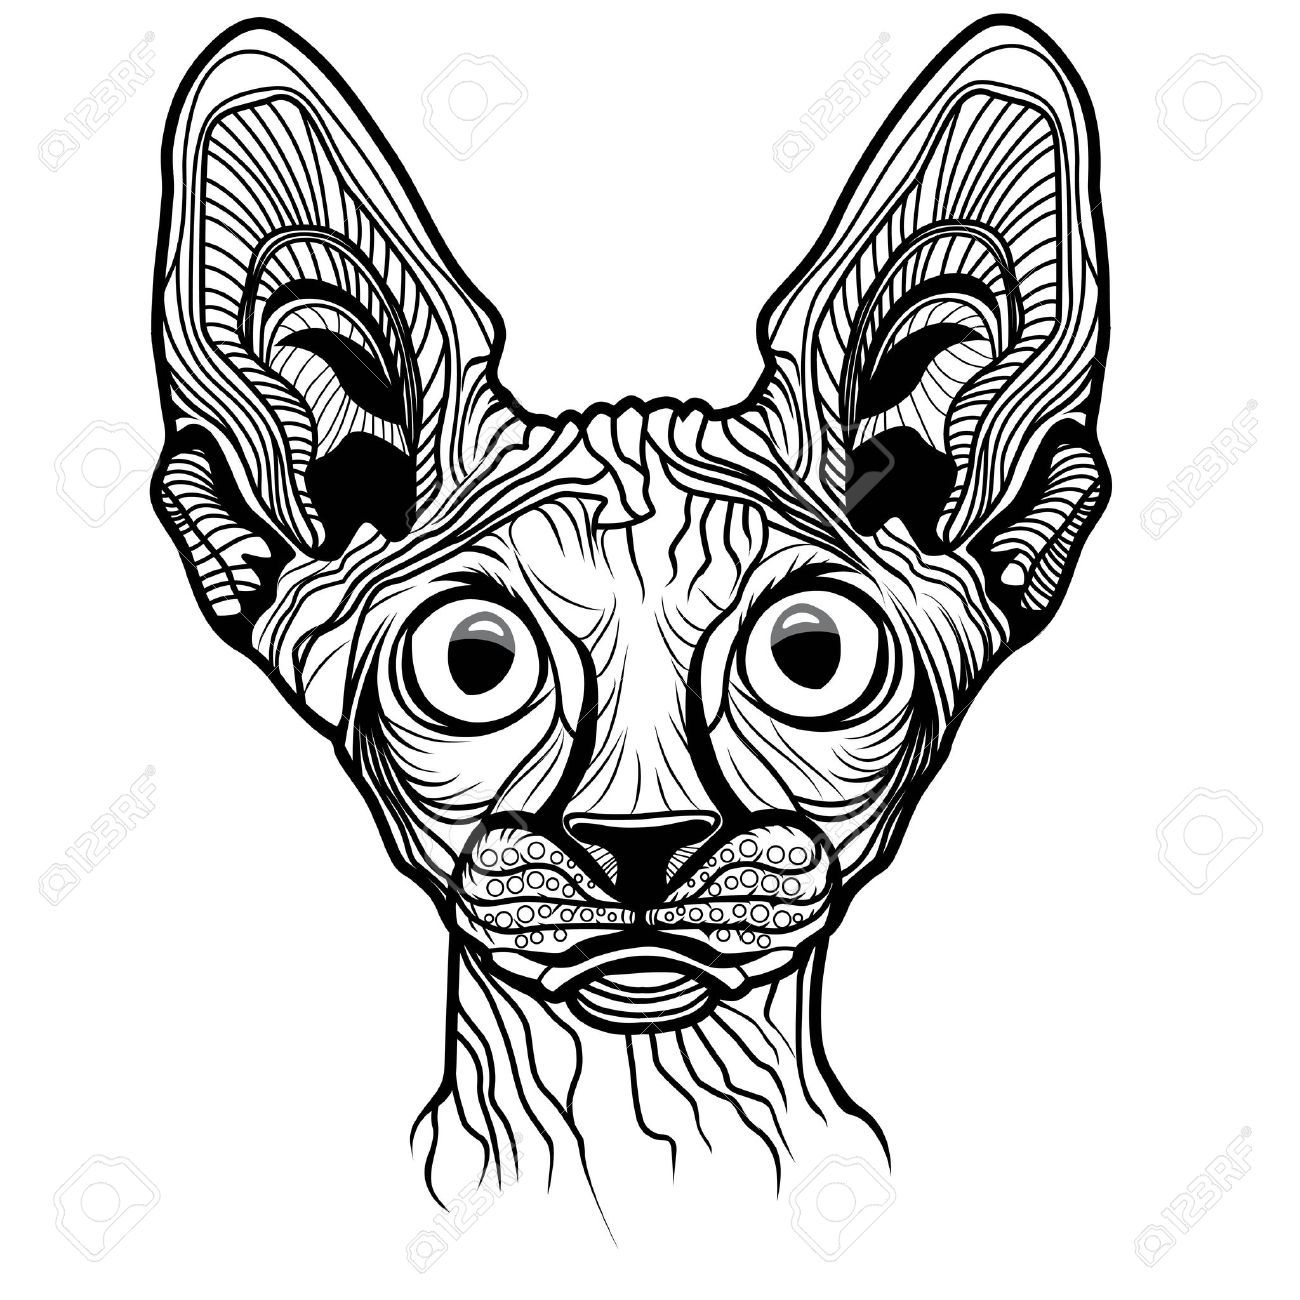 Shirt design sketches